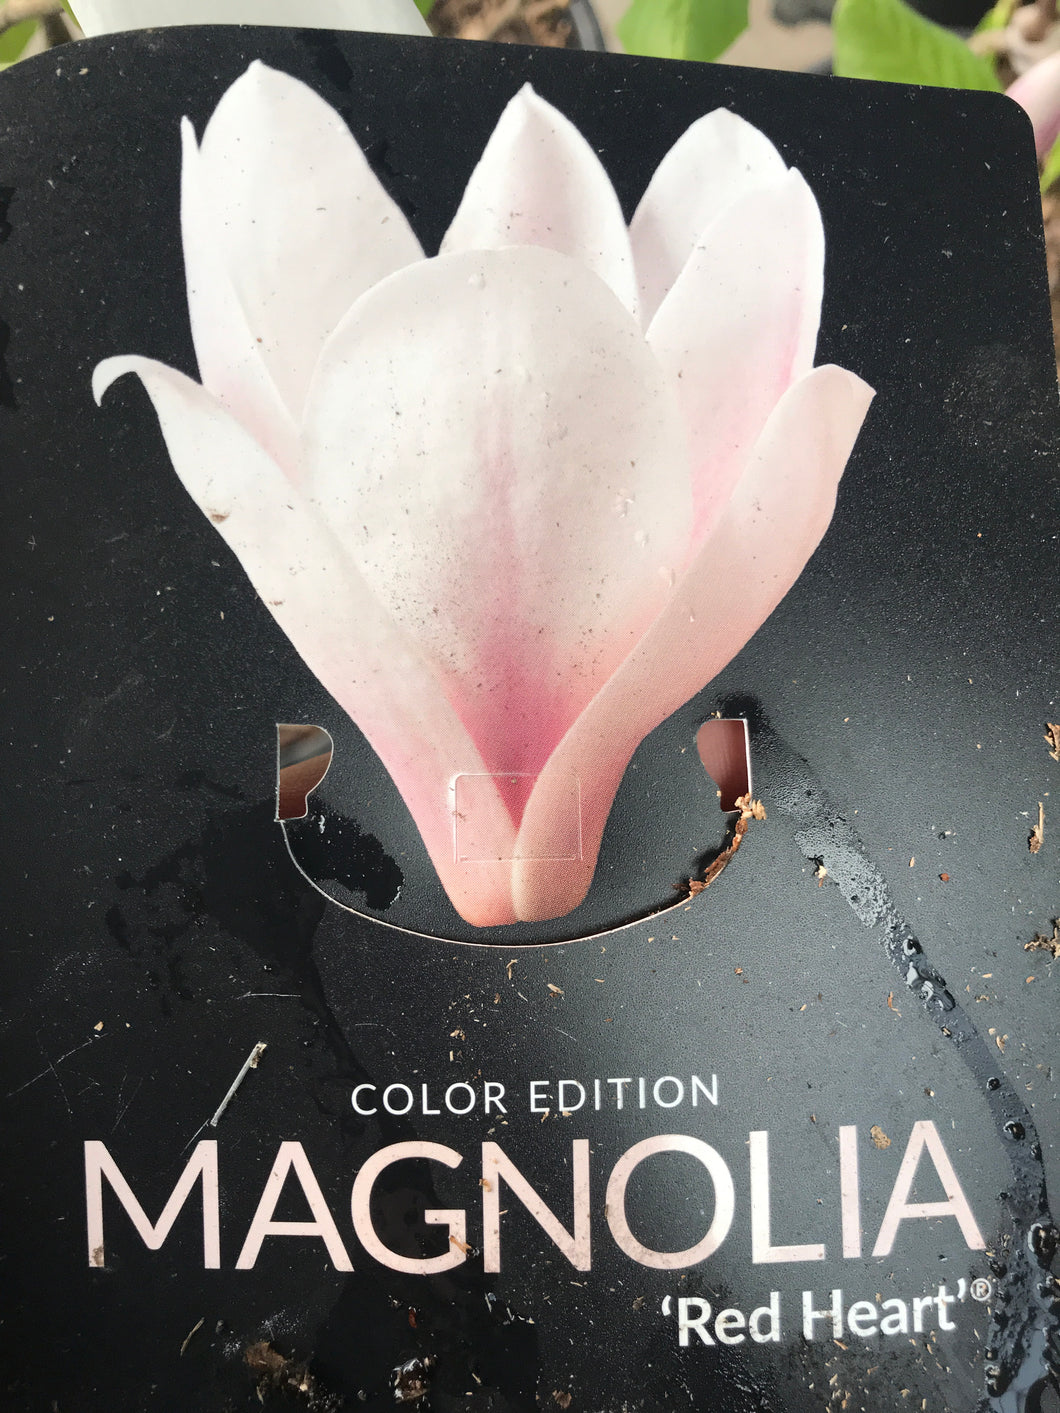 Magnolia red heart